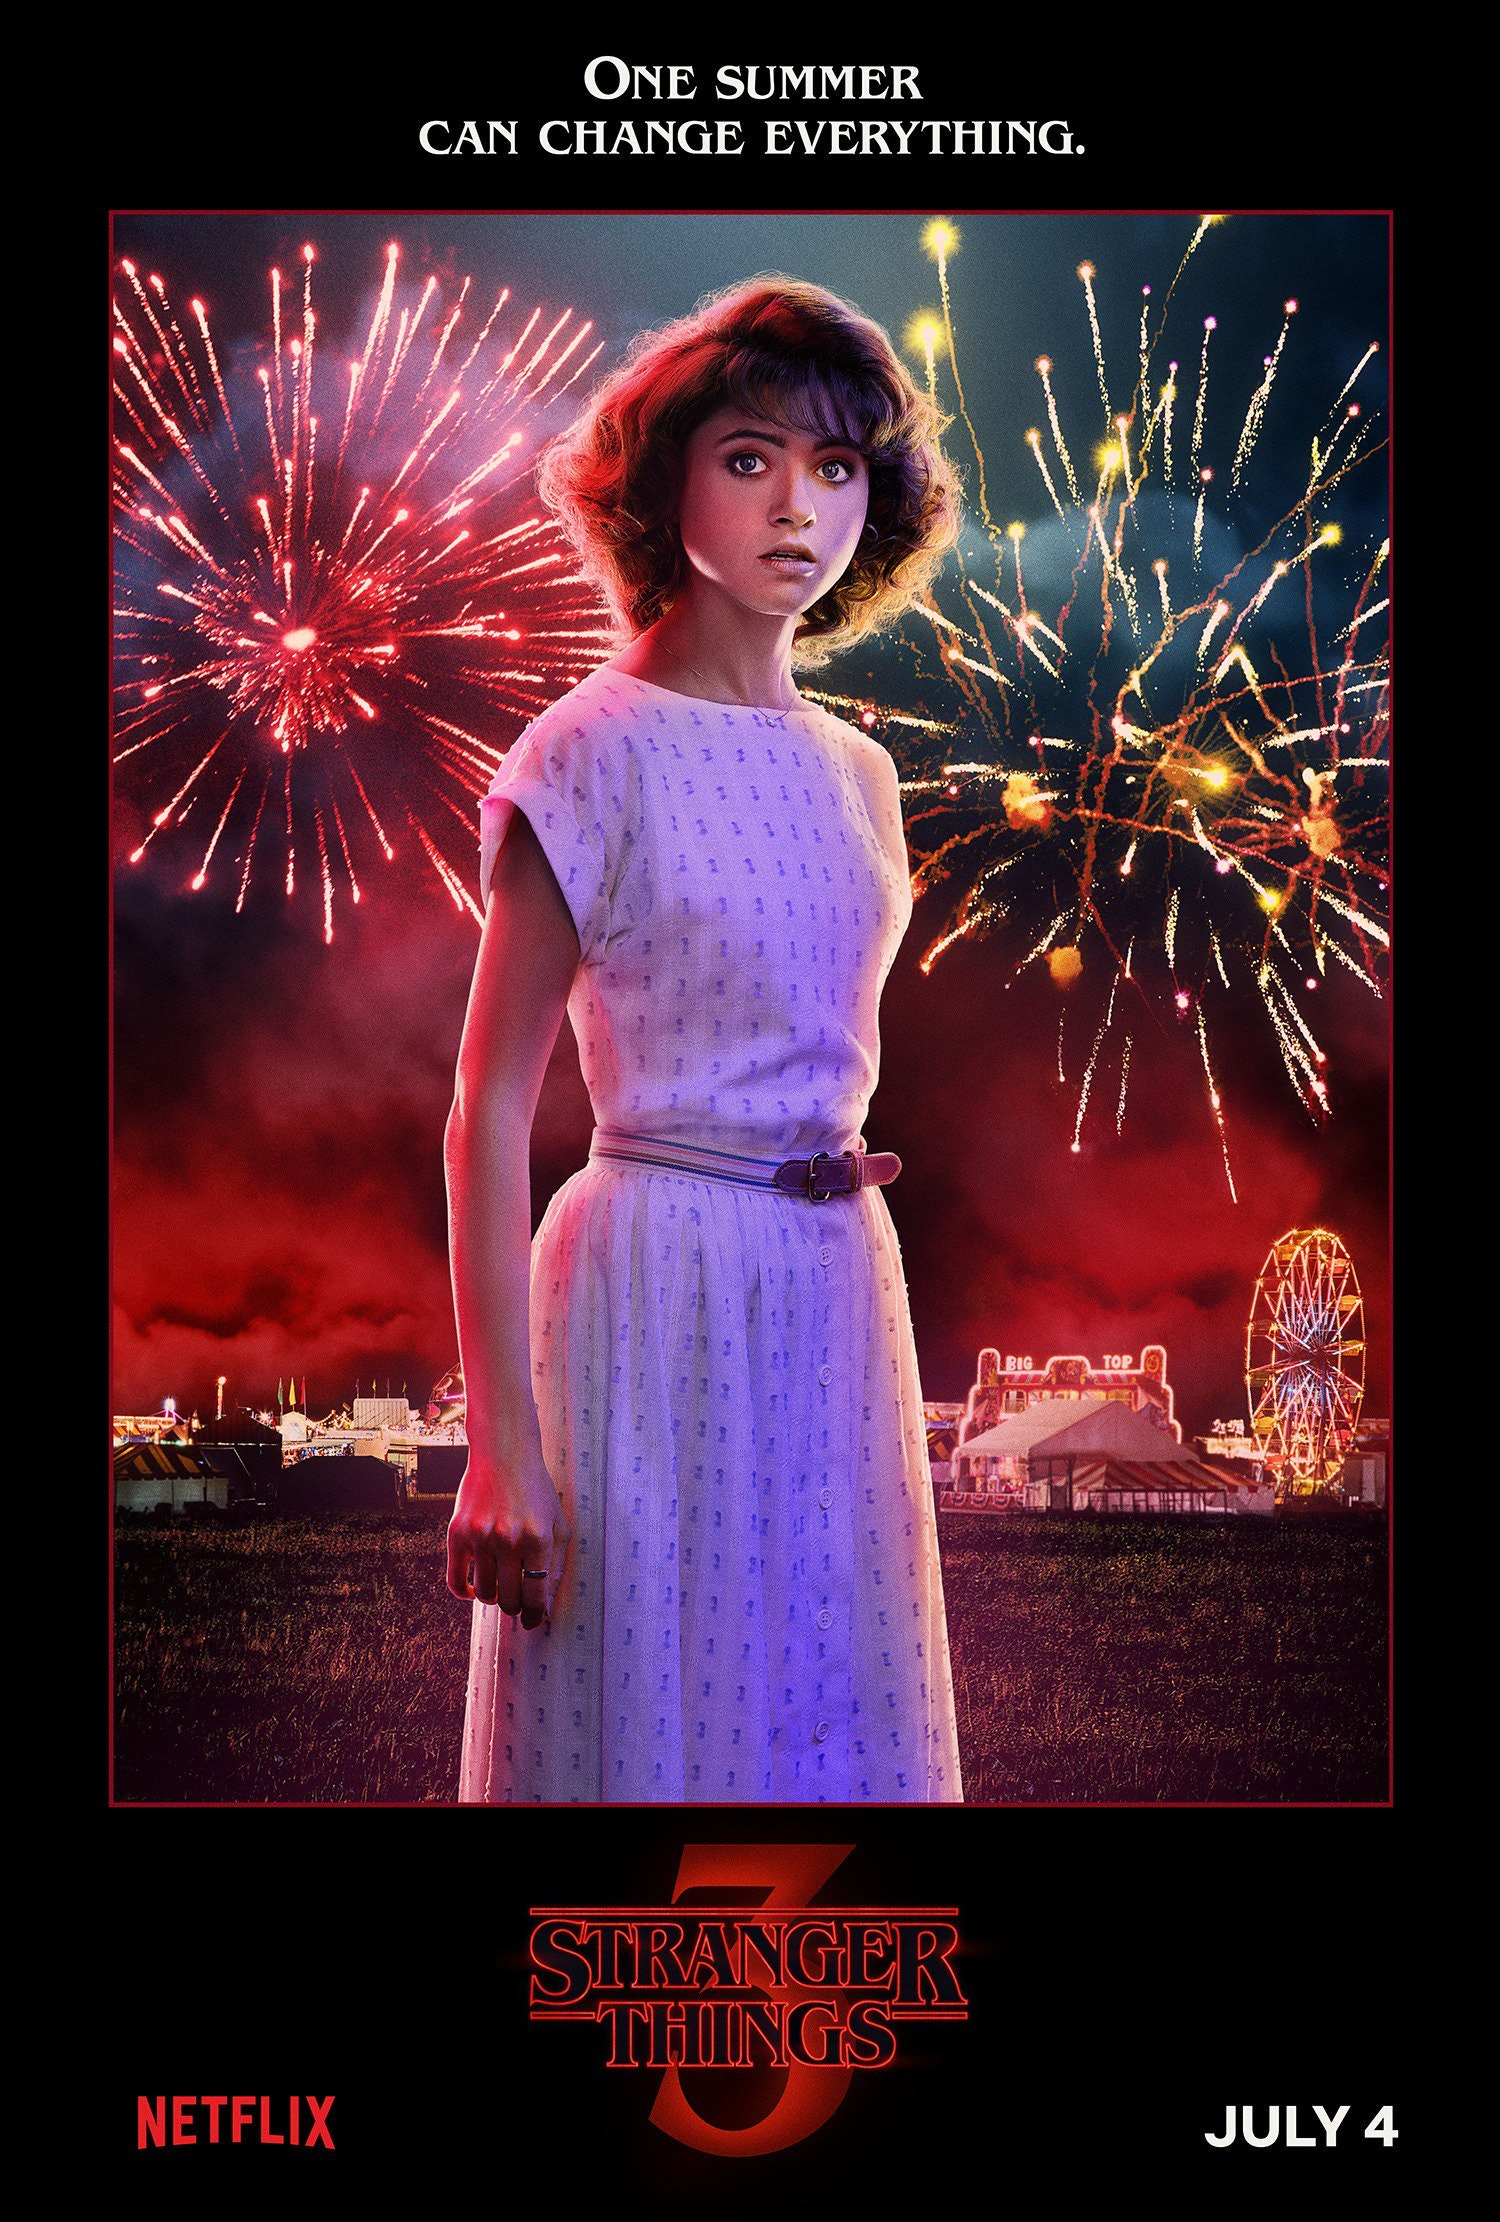 These New 'Stranger Things' Season 3 Character Posters Tease